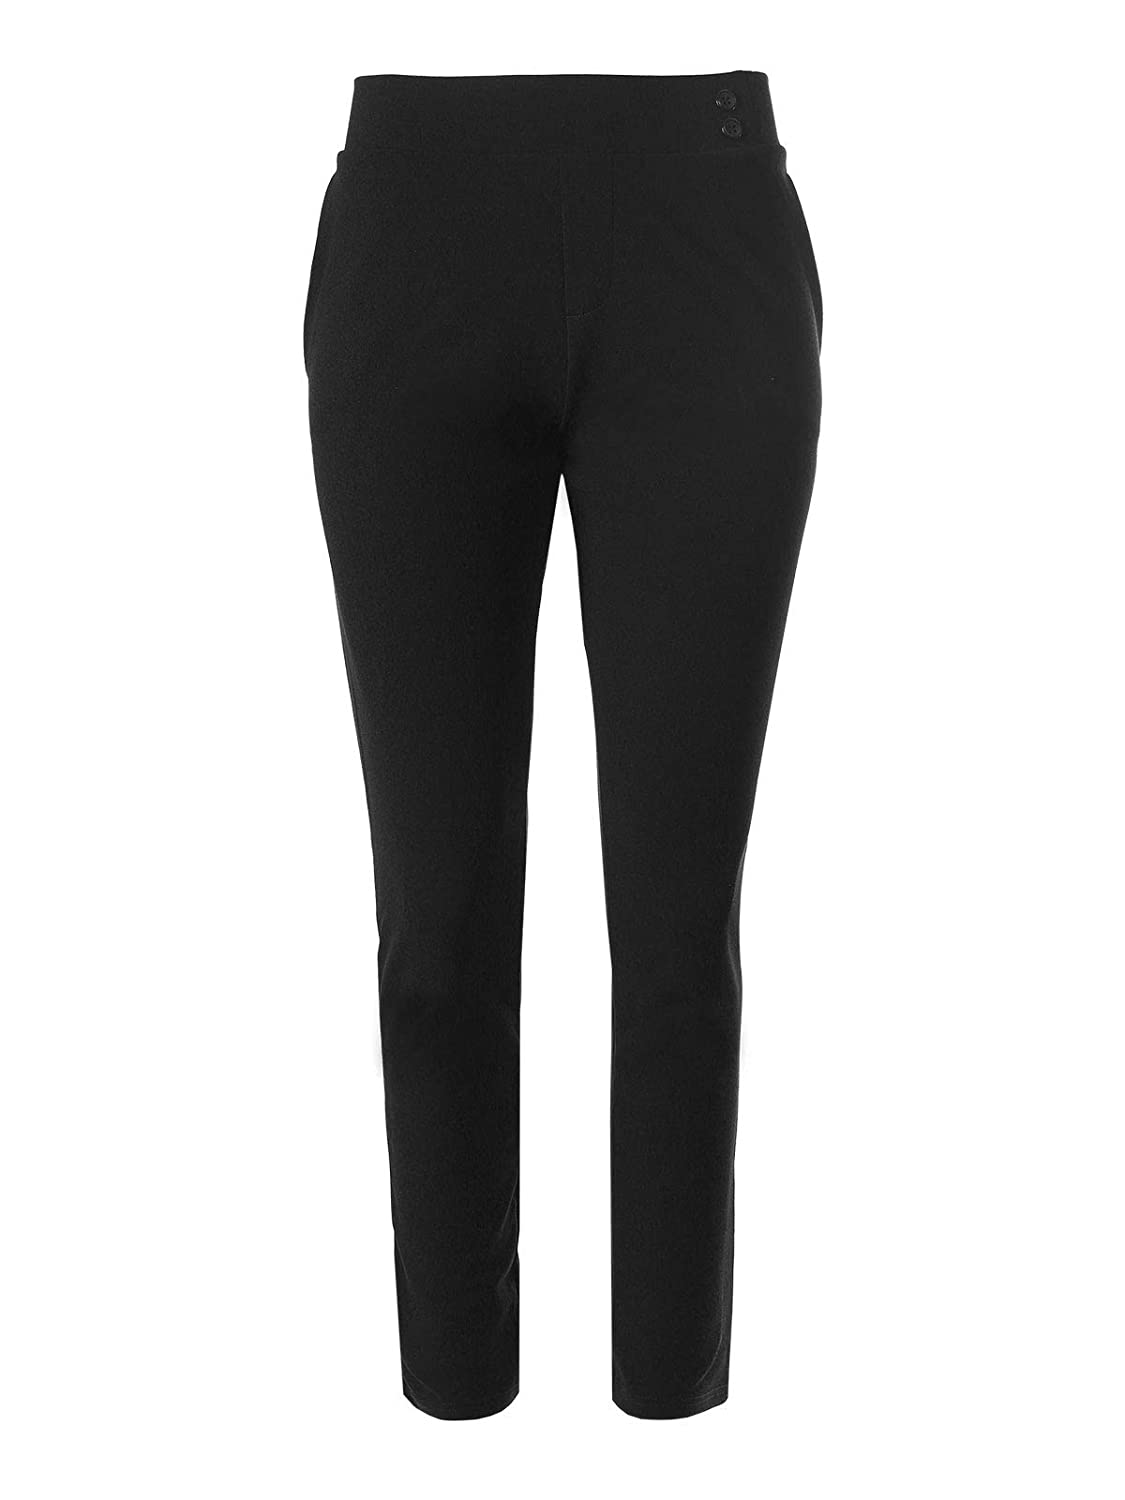 Design by Olivia Womens Solid Trouser Fit Knit Crepe Office Dress Pants